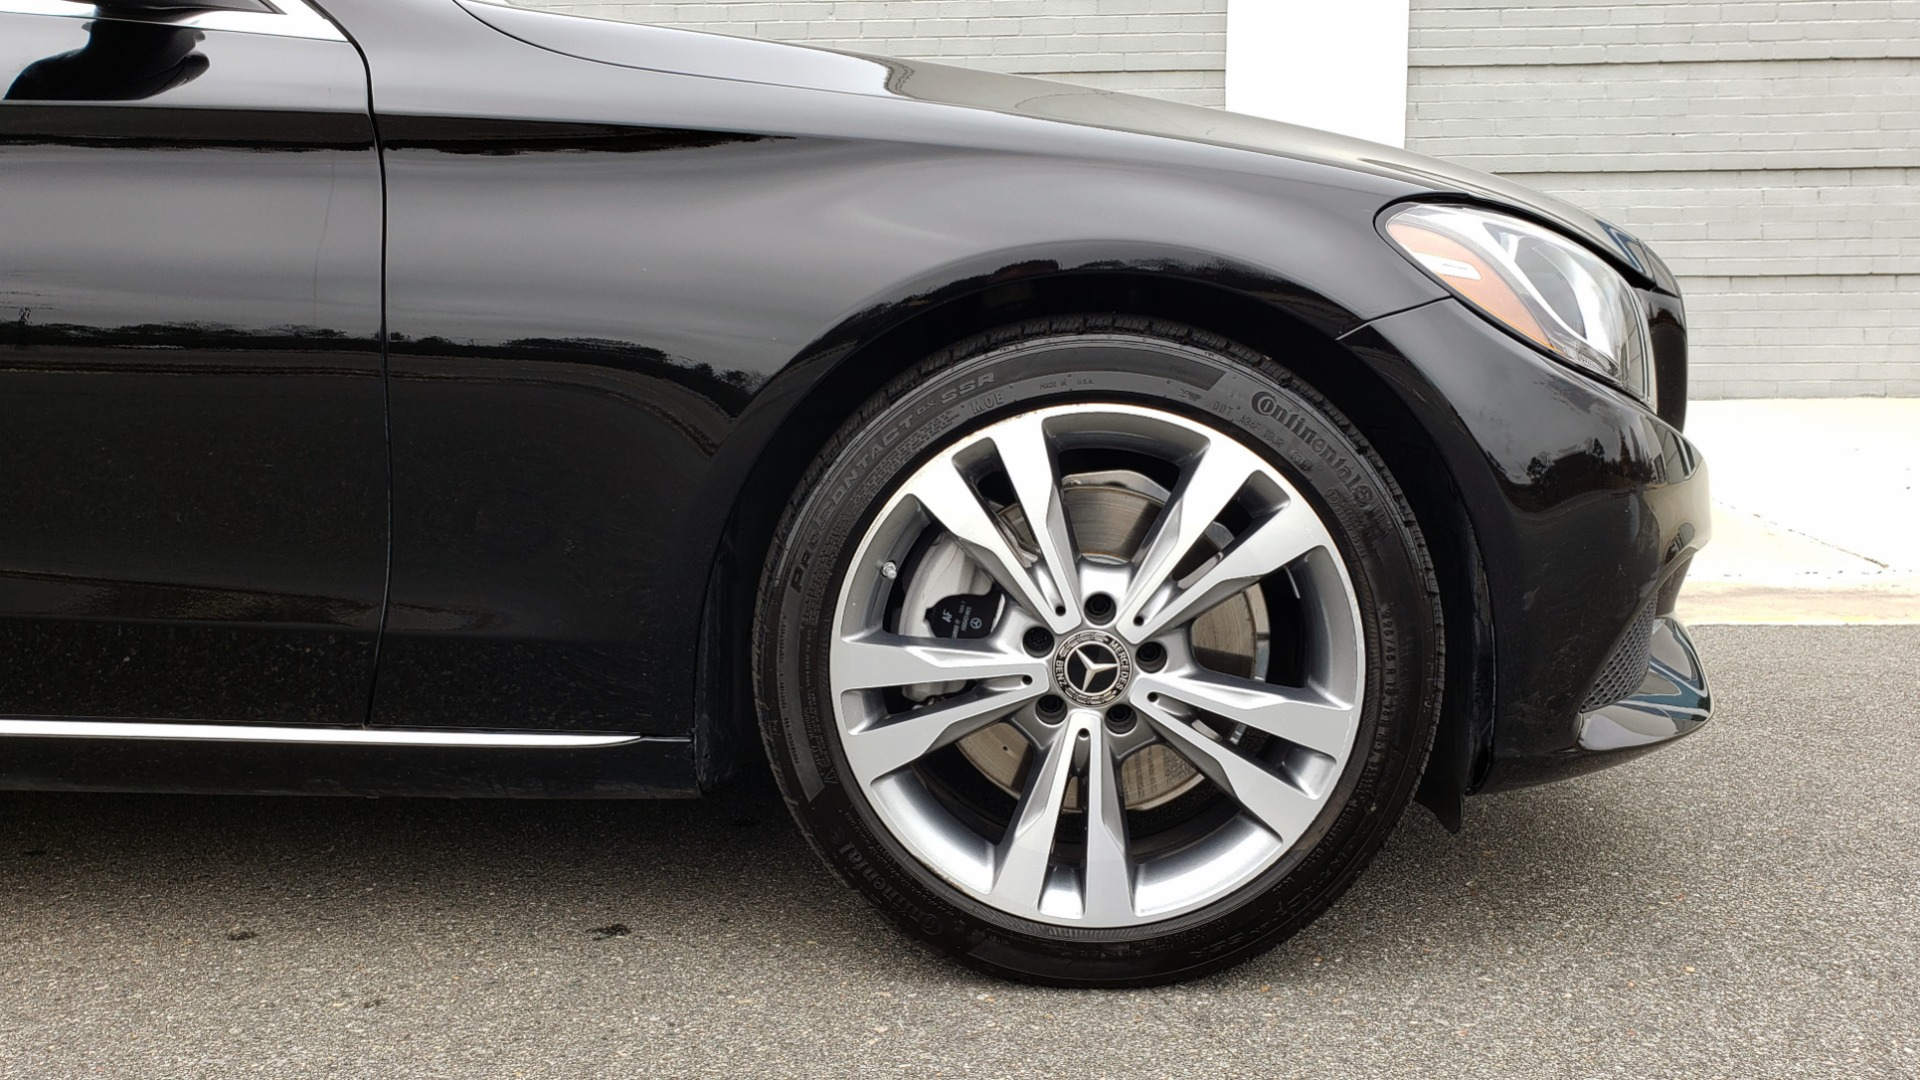 Used 2018 Mercedes-Benz C-CLASS C 300 PREMIUM / 2.0L TURBO / PANO-ROOF / KEYLESS-GO / REARVIEW for sale Sold at Formula Imports in Charlotte NC 28227 85